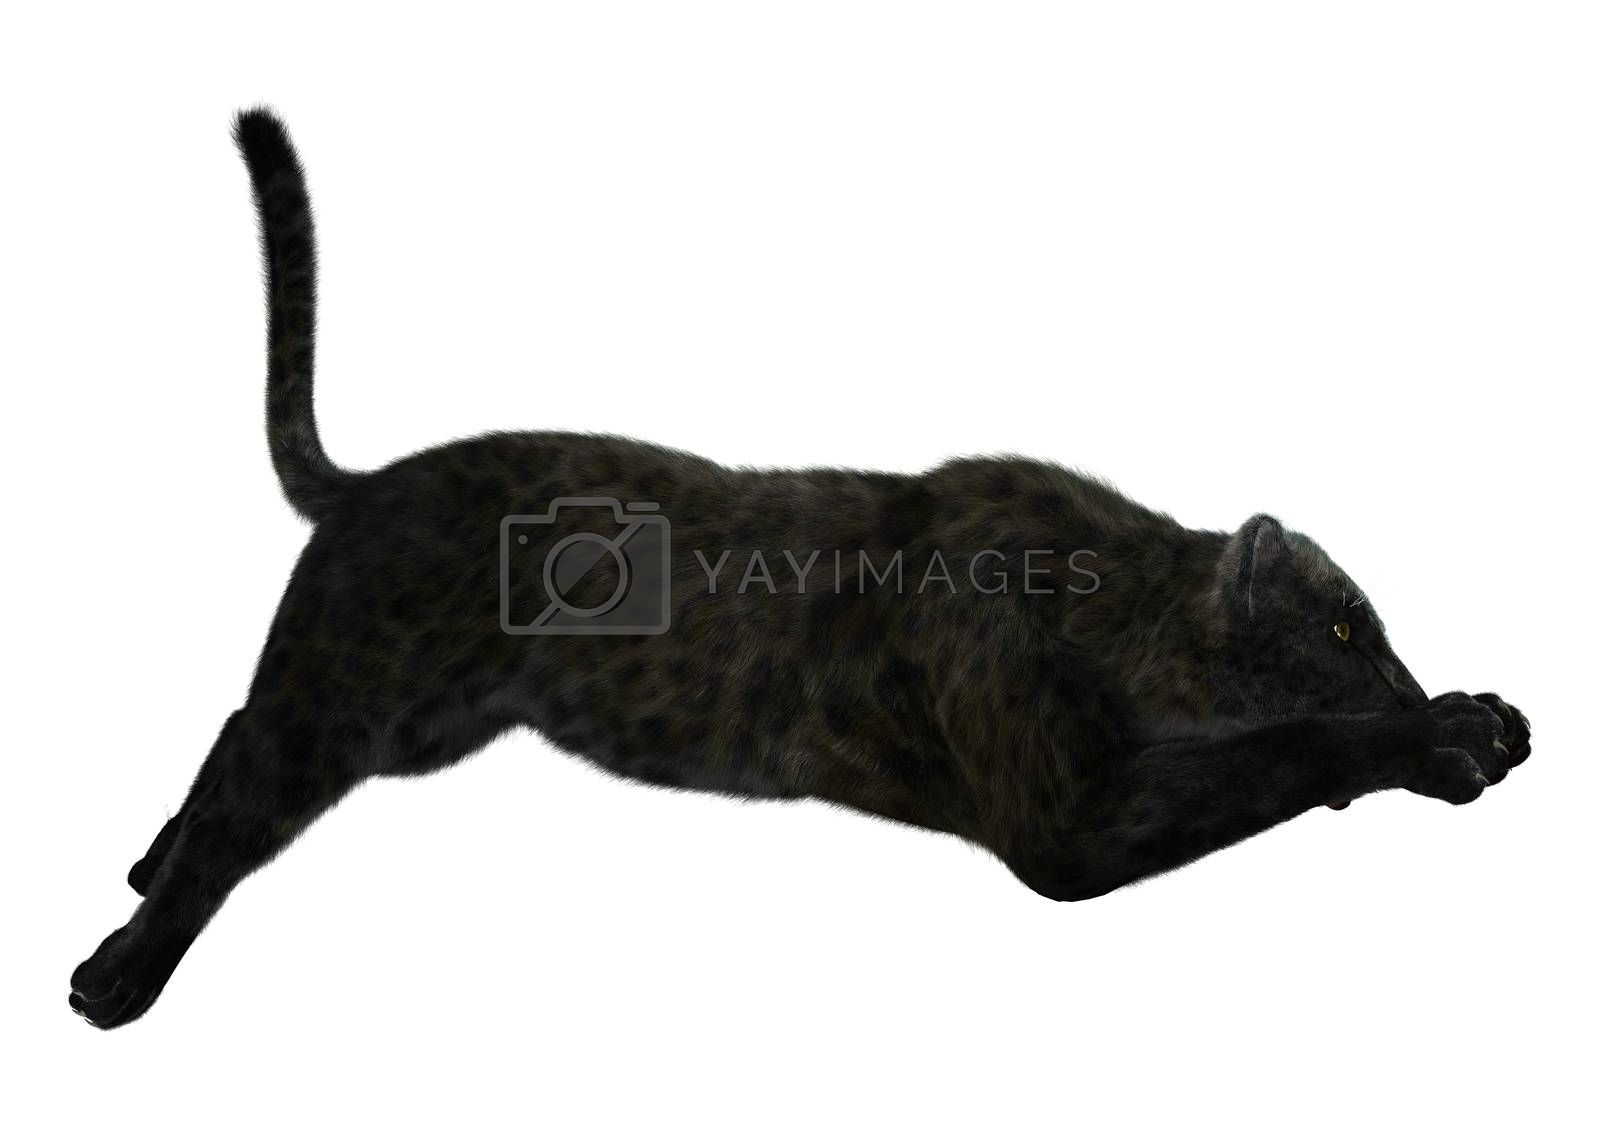 3D digital render of a big cat jaguar hunting iisolated on white background